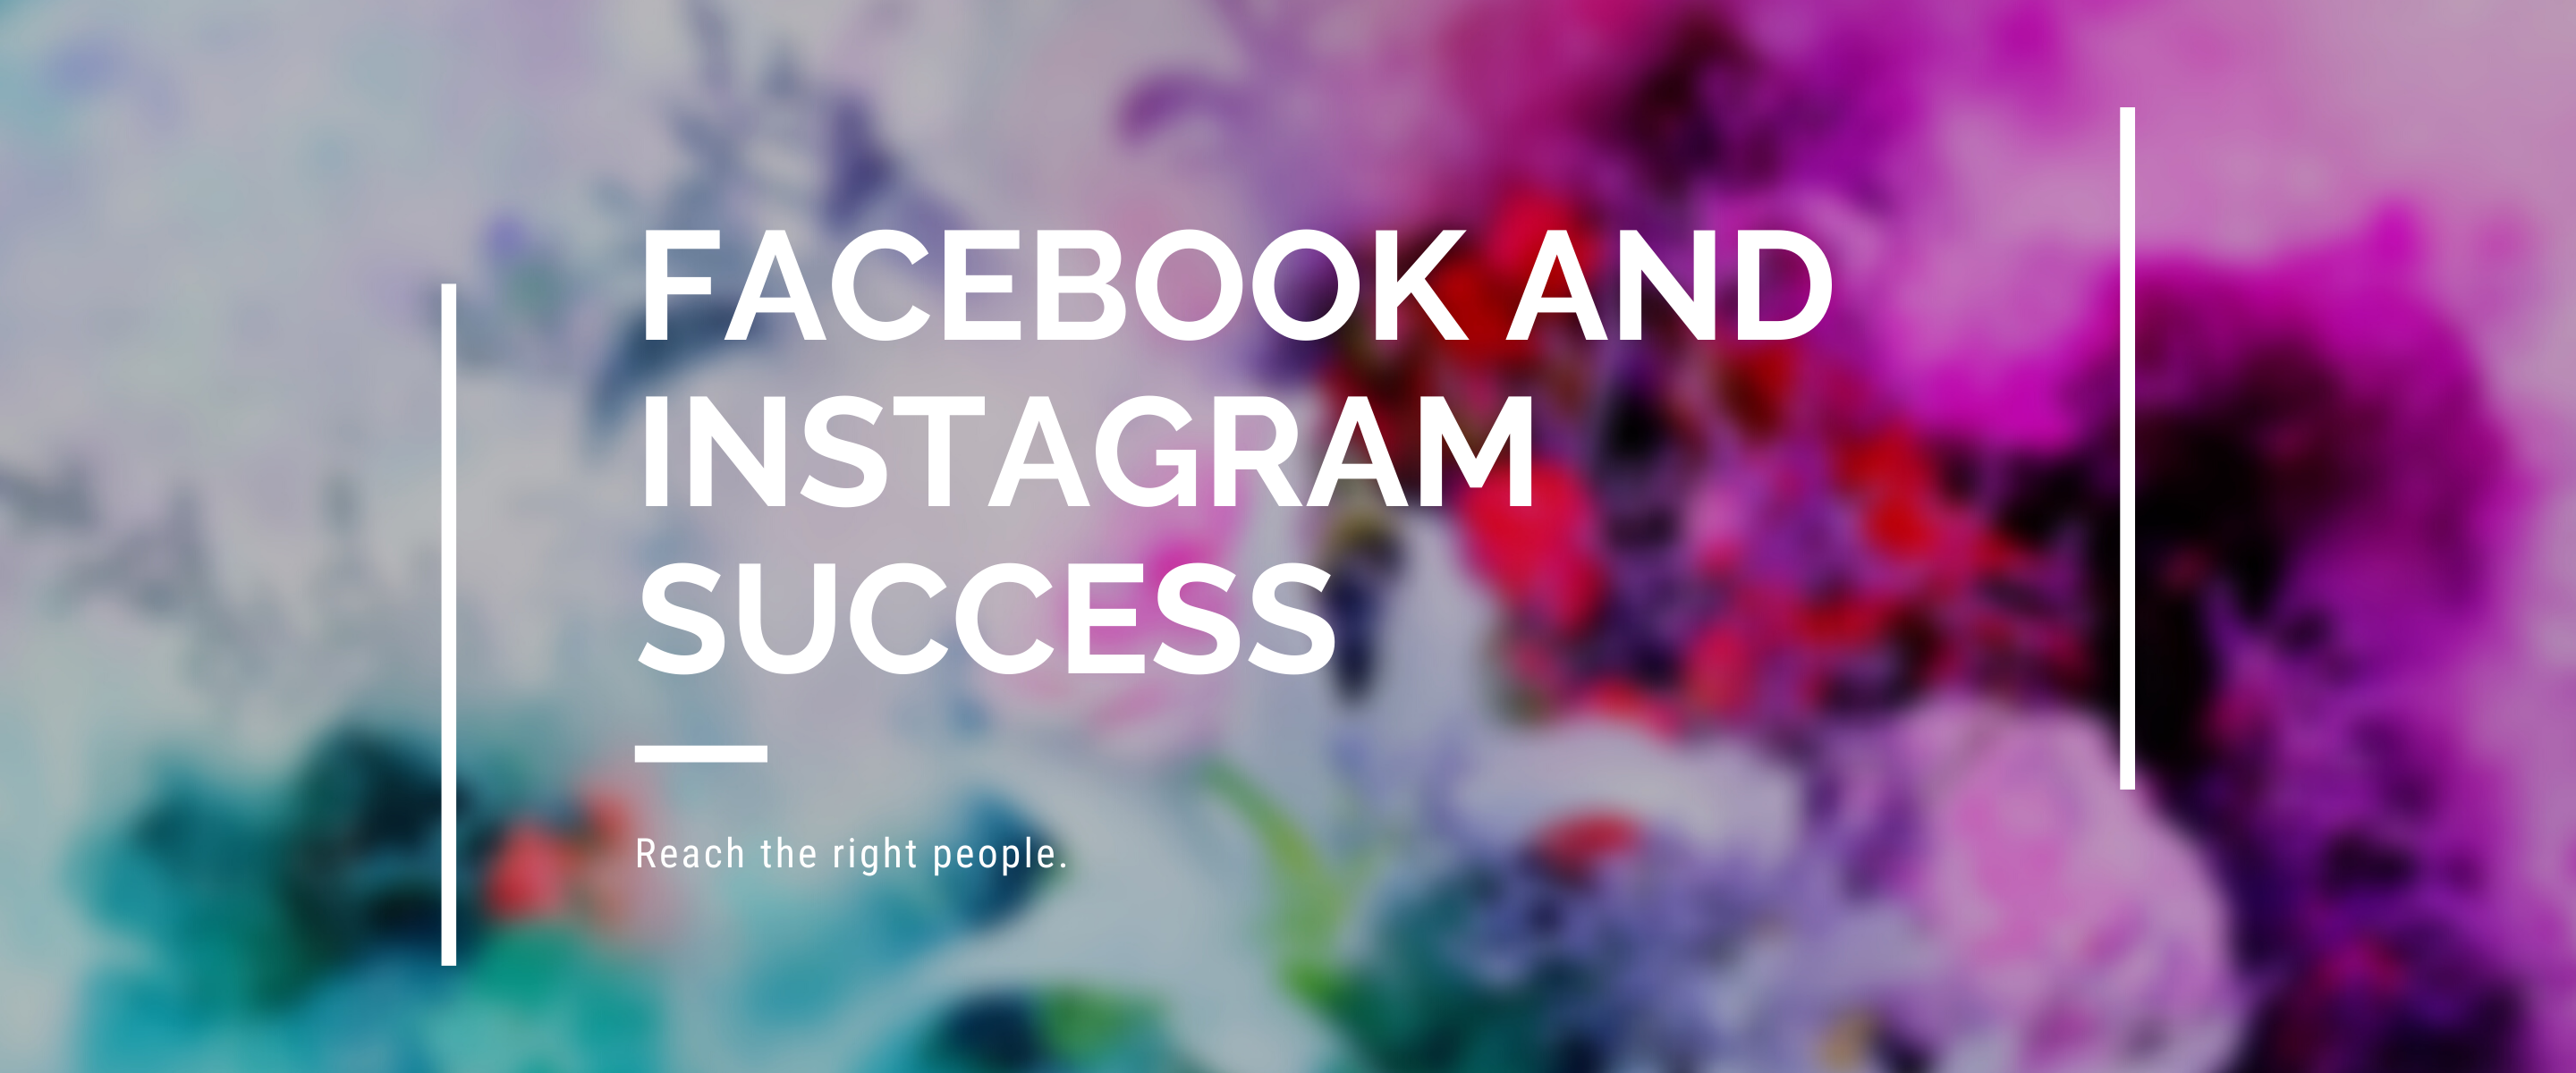 Market Savvy - Facebook and Instagram Success